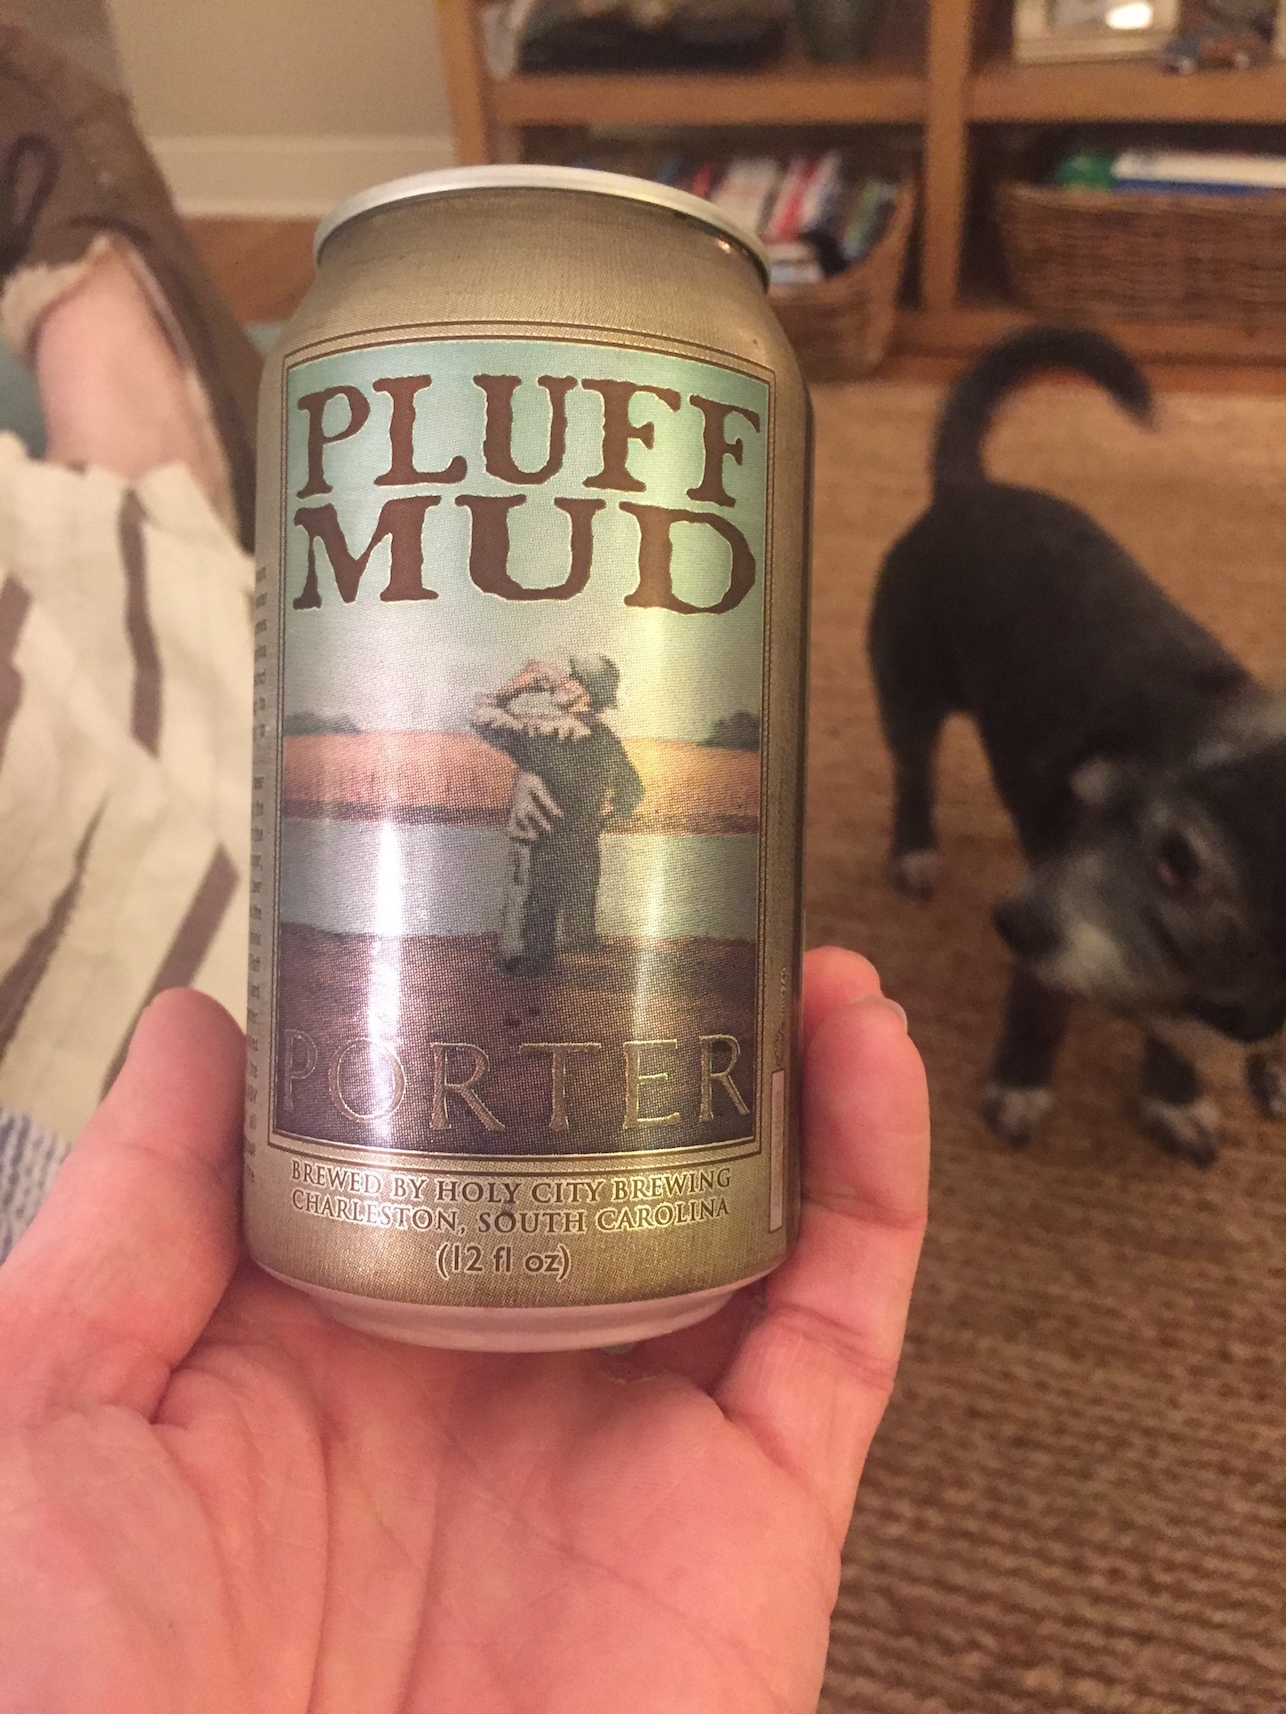 holy_city_brewing__pluff_mud_porter-_null_